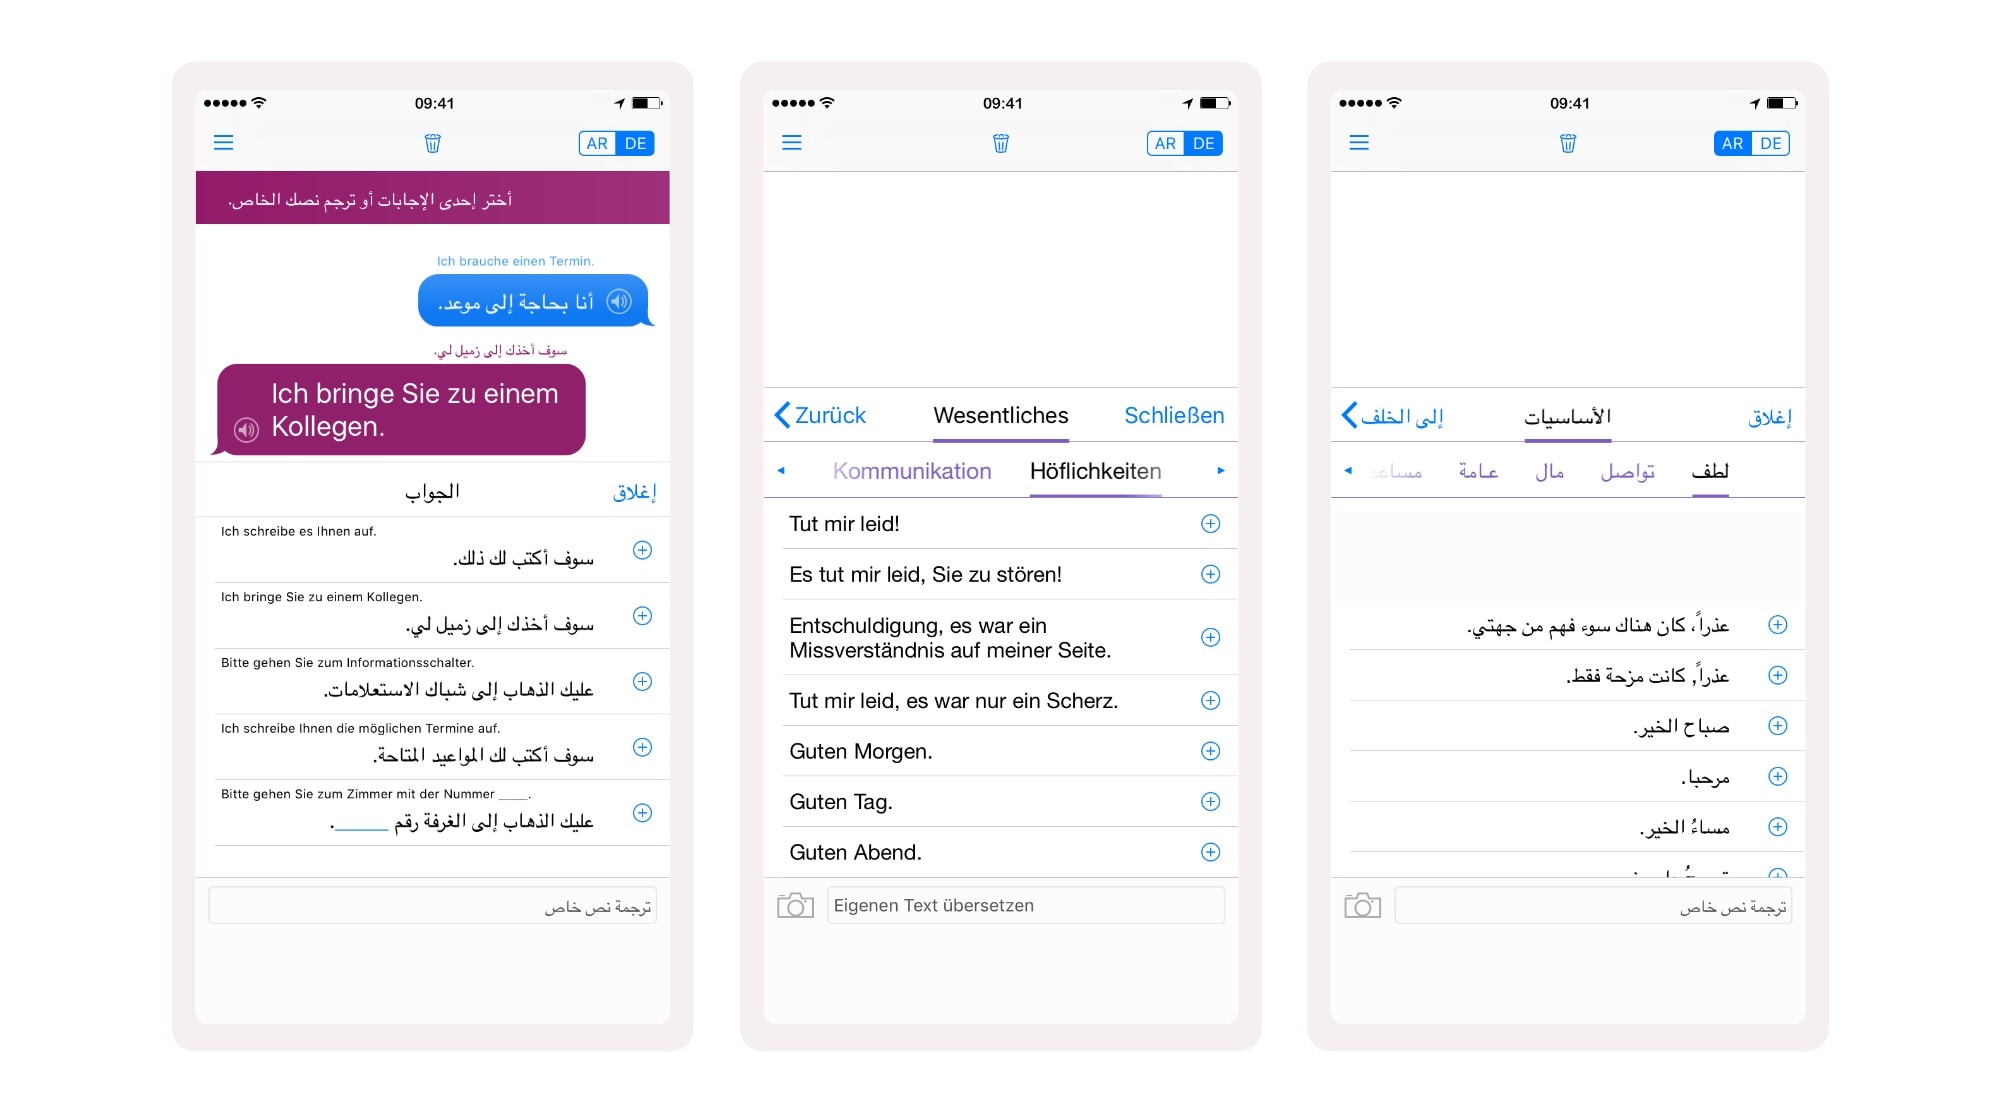 User interface design for the mobile app Fahum